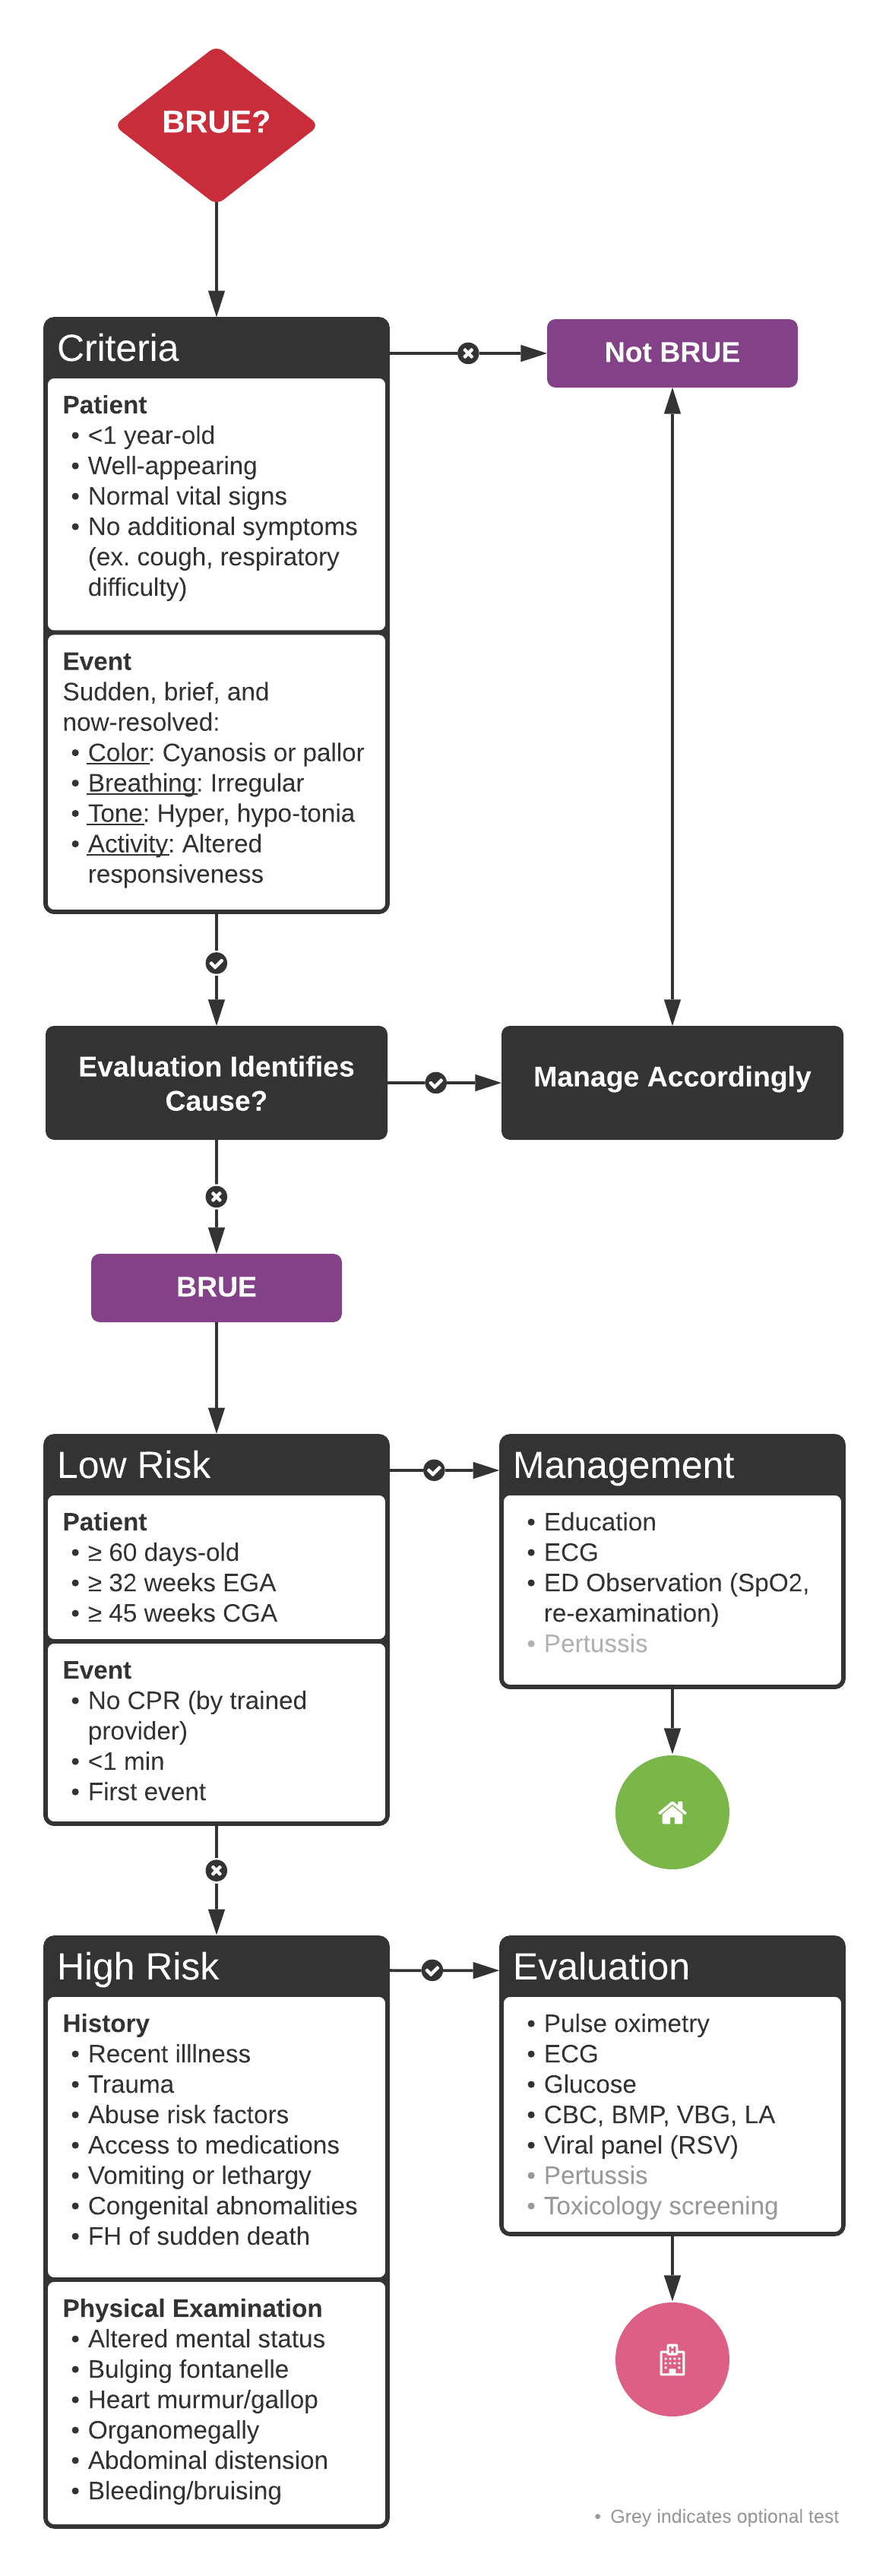 An Algorithm for the Evaluation and Management of Brief Resolved Unexplained Events (BRUE)